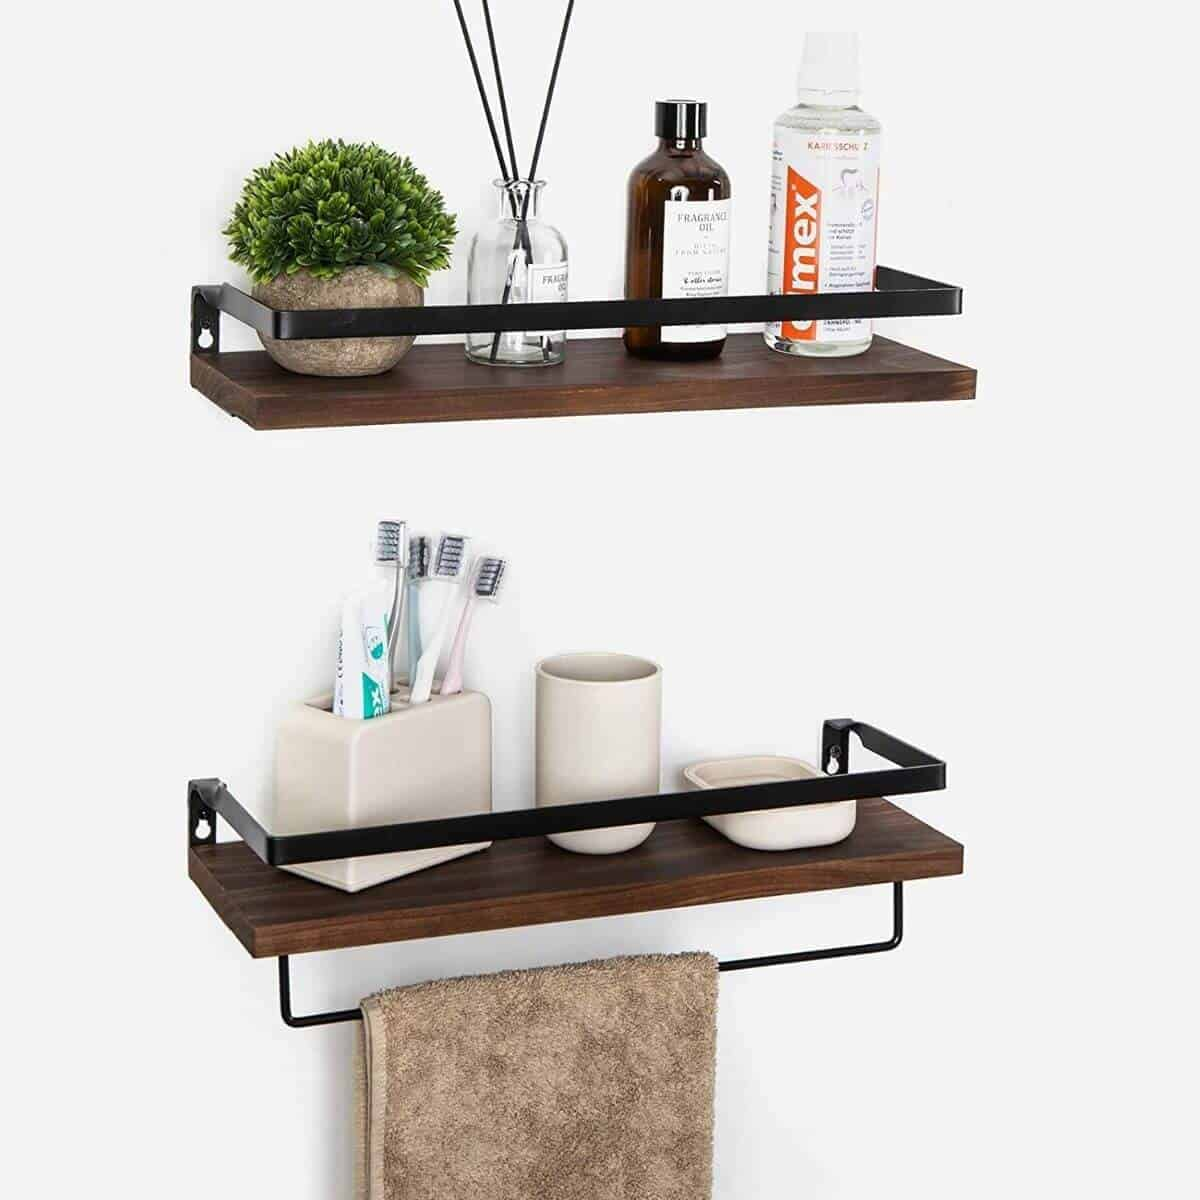 Two wooden floating shelves with bathroom items on it.